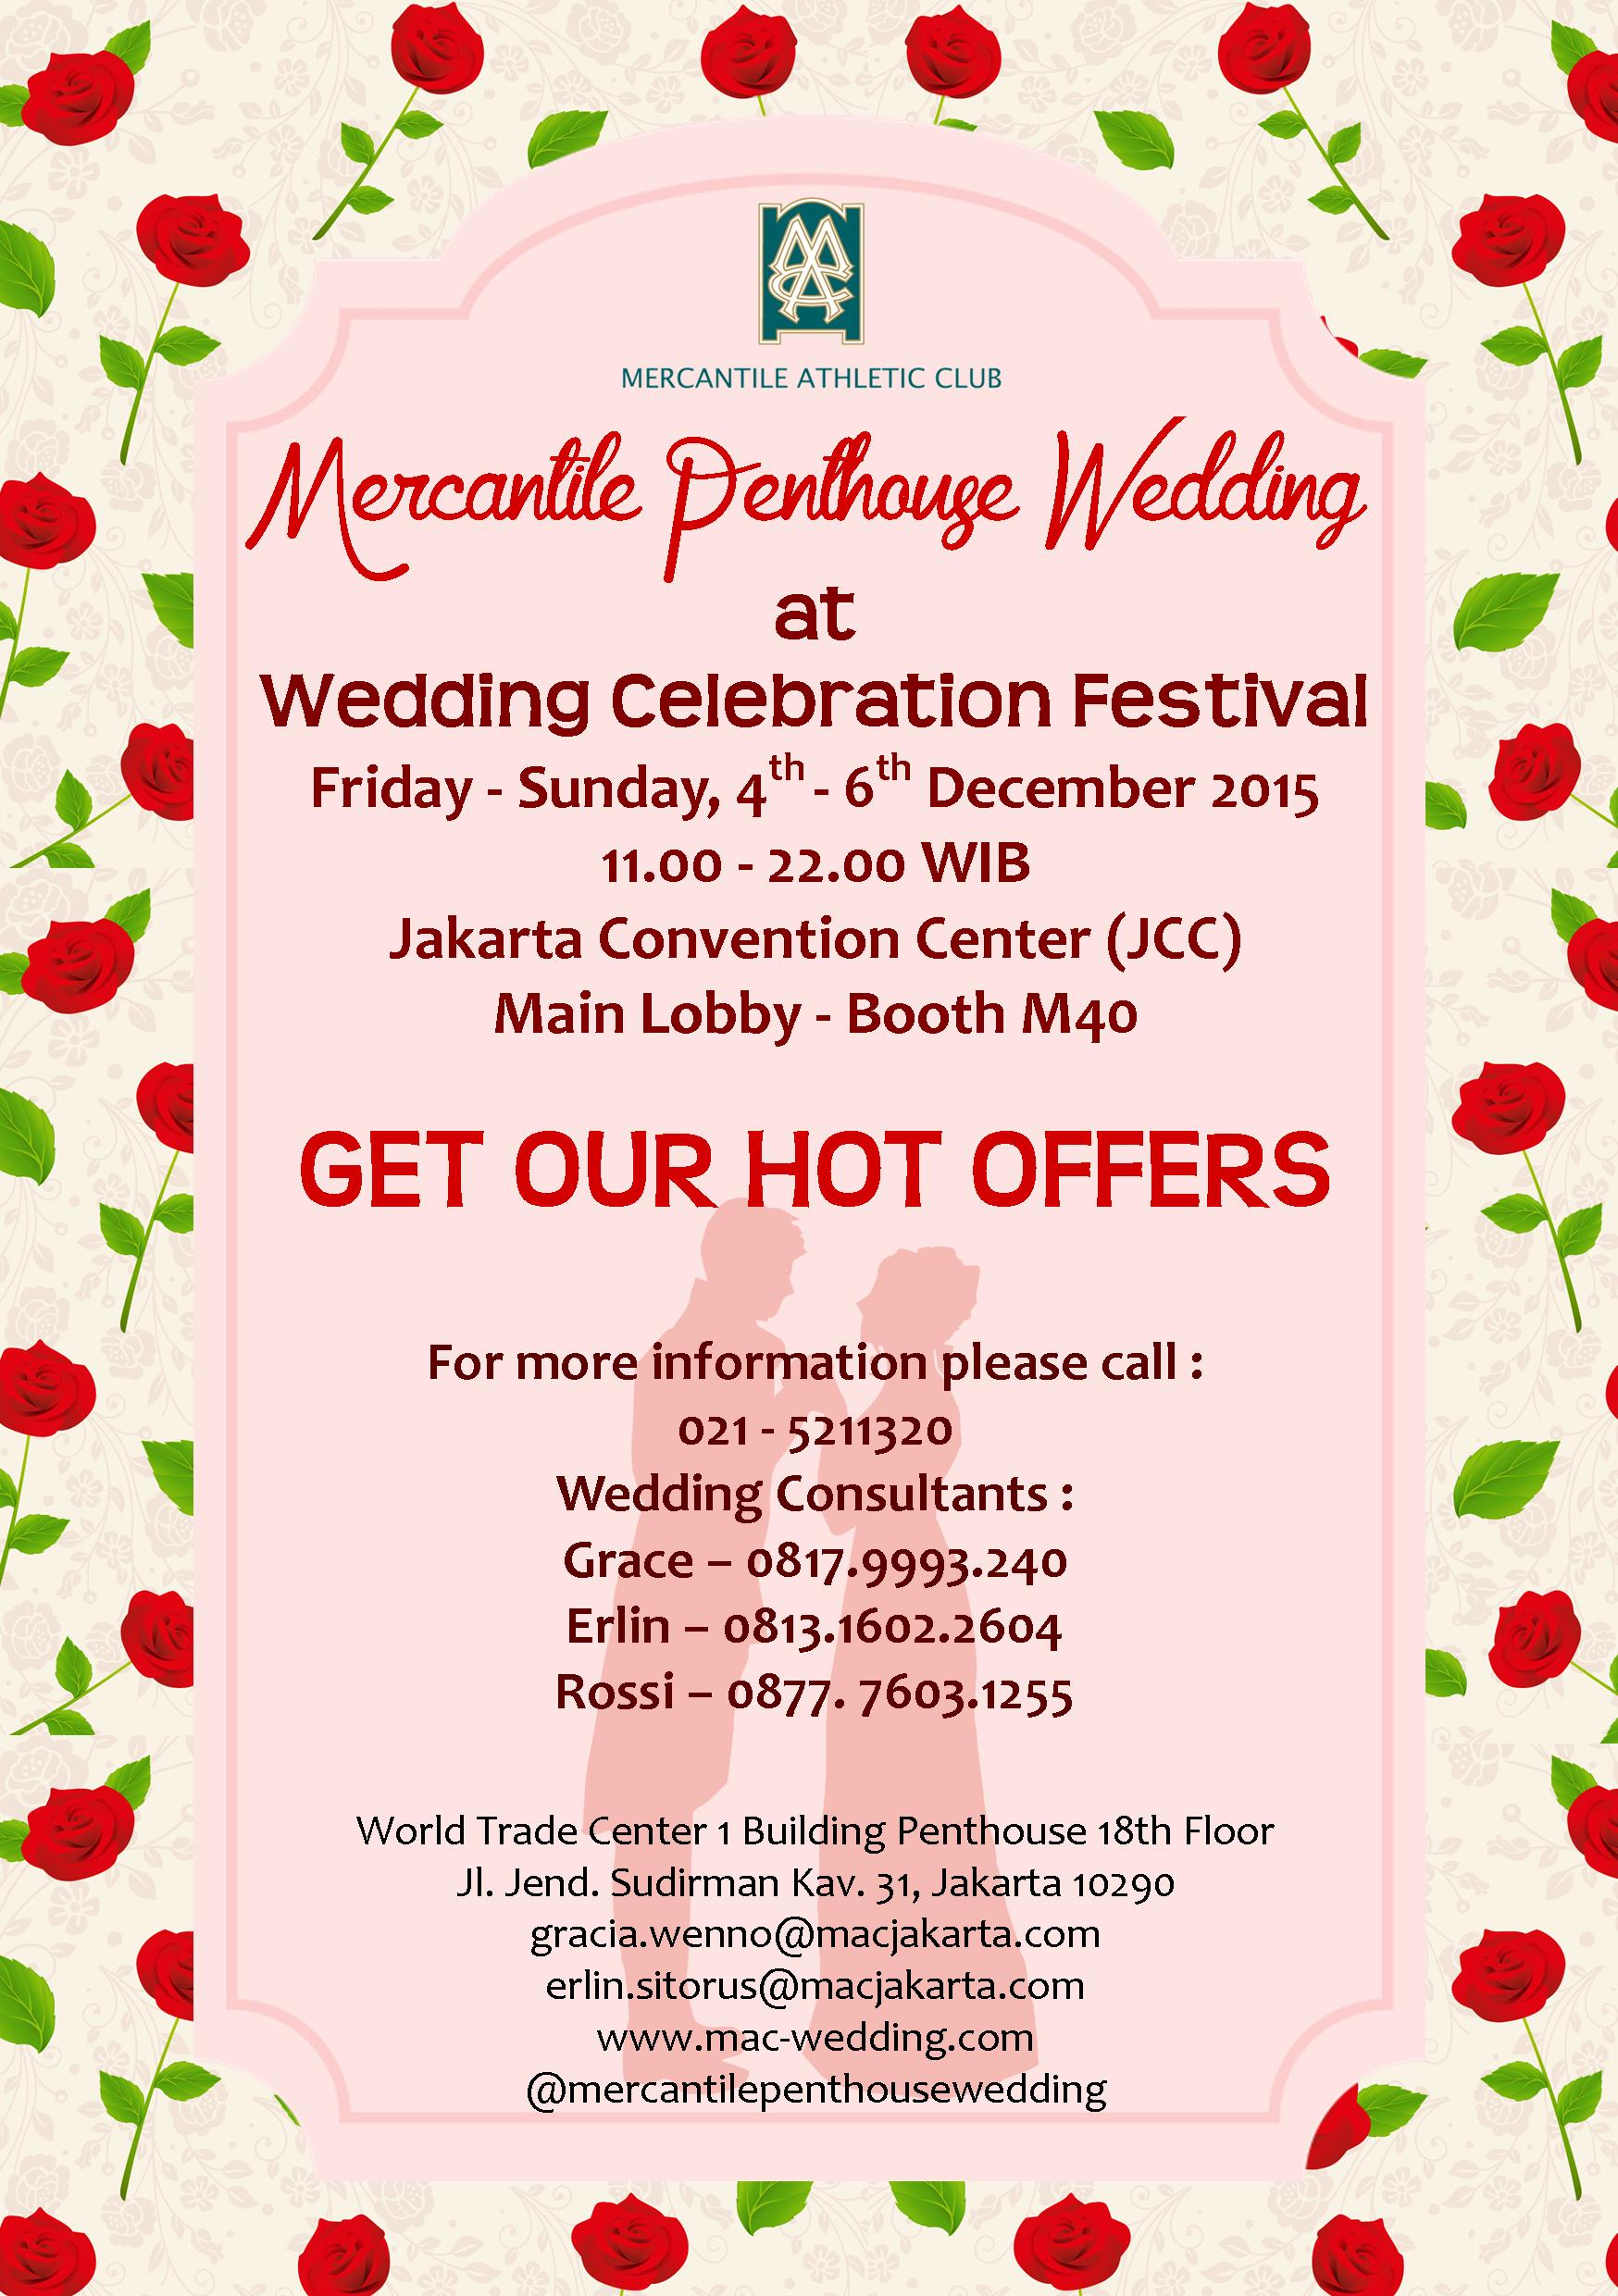 Our Event Promo By Mercantile Penthouse Wedding Kupon Photo Booth Pernikahan Souvenir 1